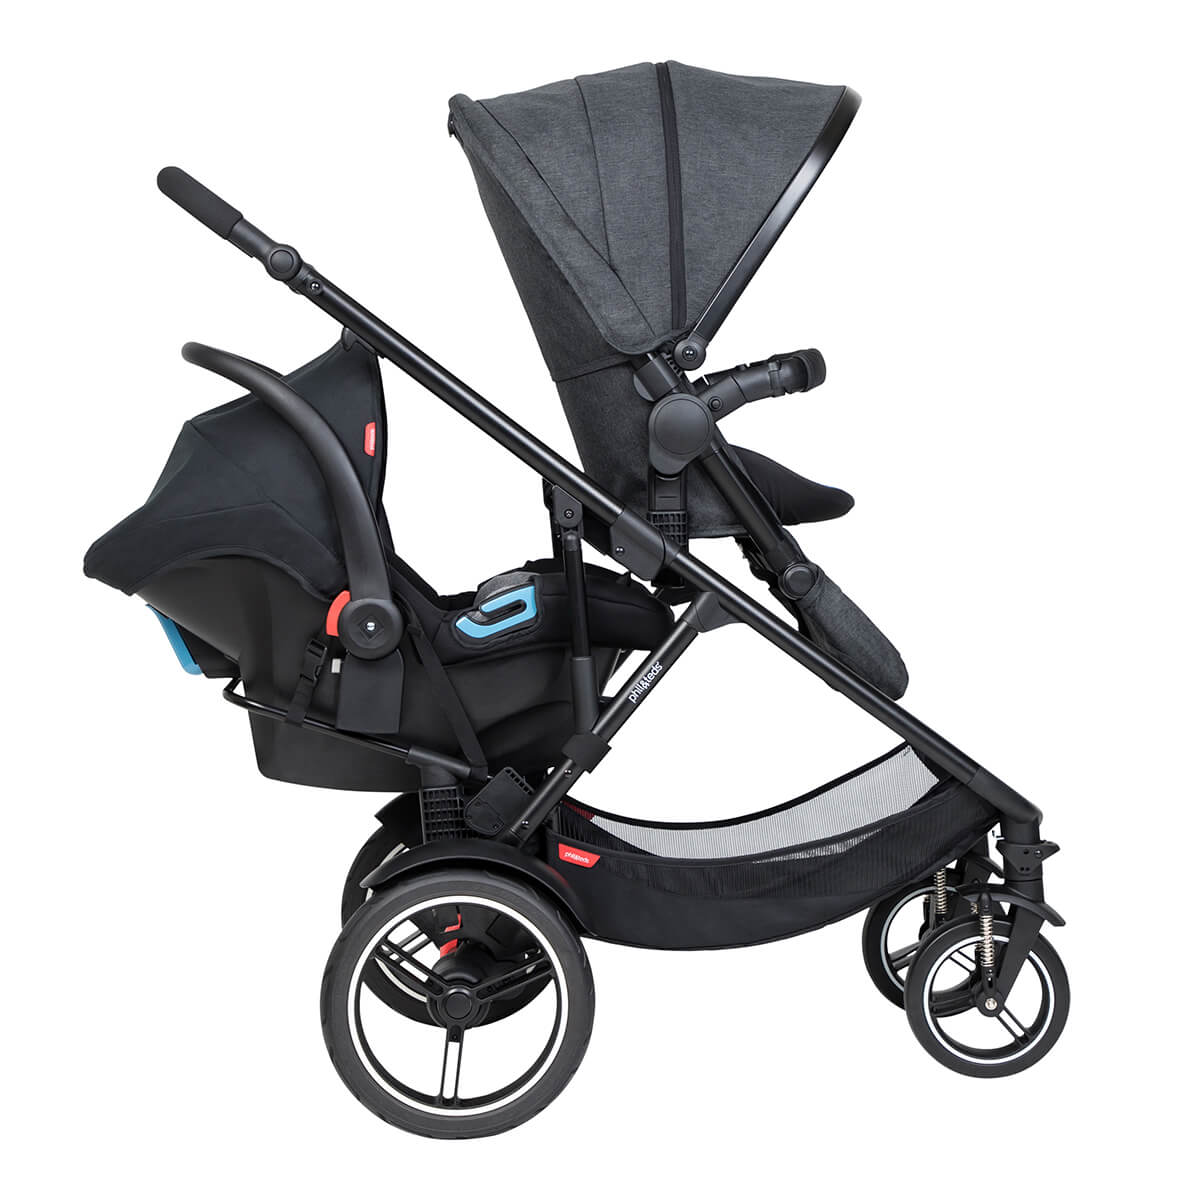 https://cdn.accentuate.io/4390319587424/19440099688632/philteds-voyager-buggy-in-forward-facing-mode-with-travel-system-in-the-rear-v1633401038254.jpg?1200x1200